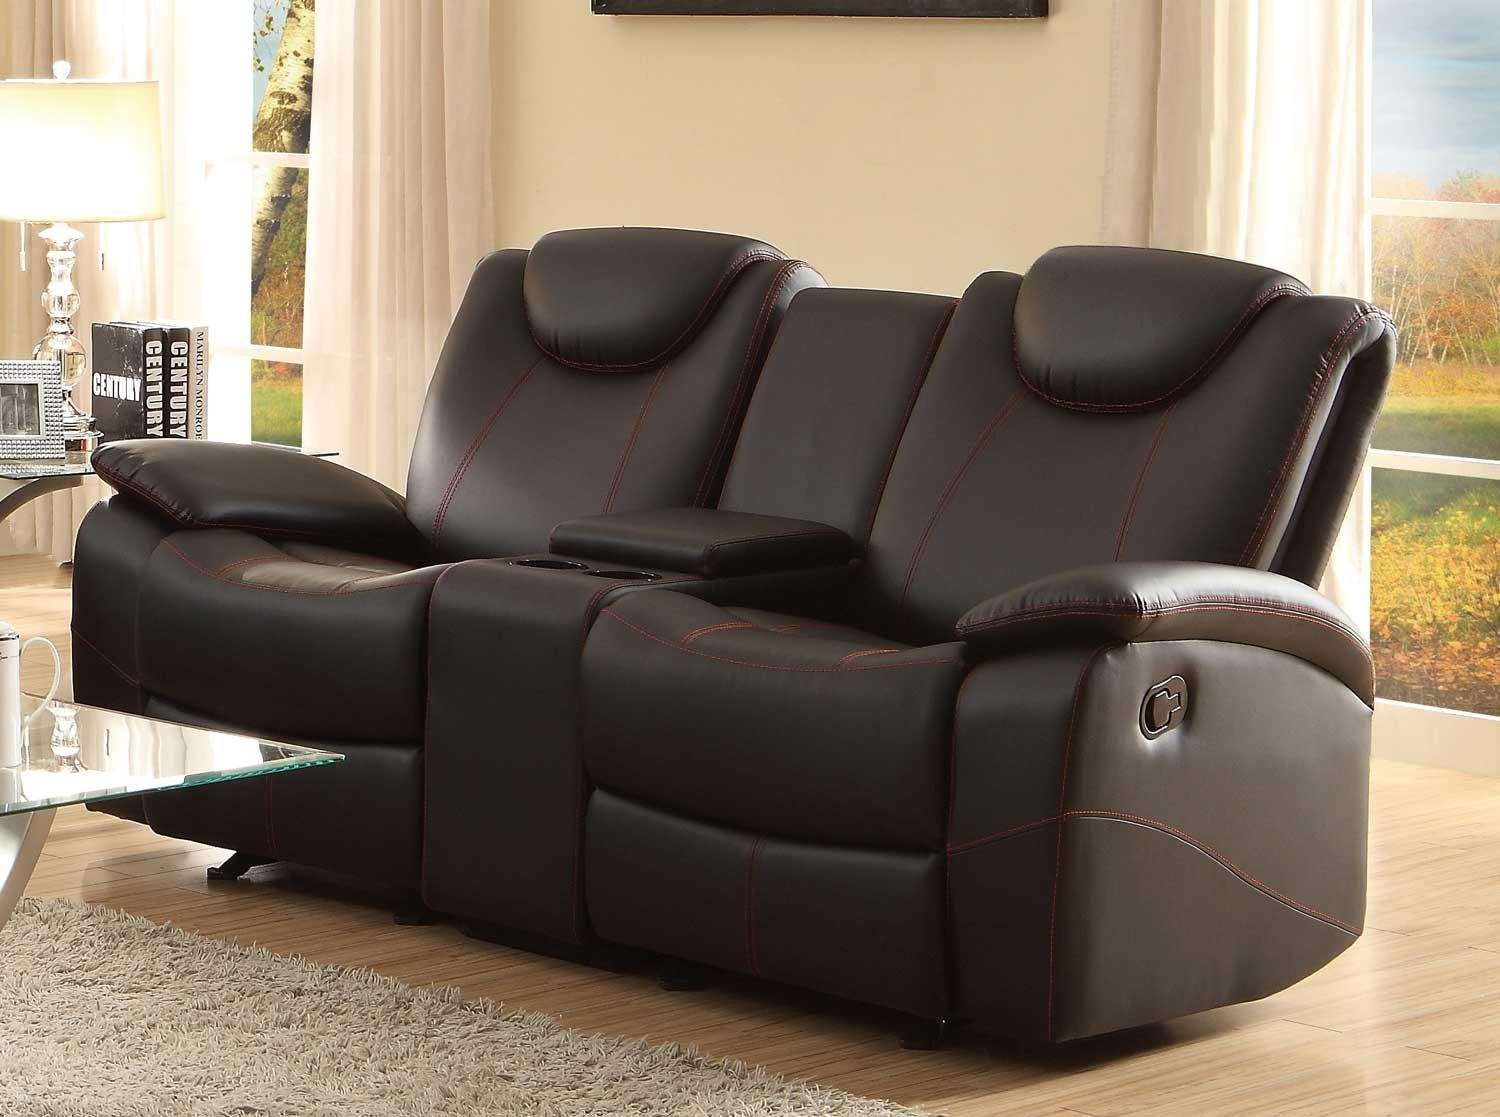 Homelegance Talbot Double Glider Reclining Love Seat With Center Inside Sofas With Console (Image 6 of 20)